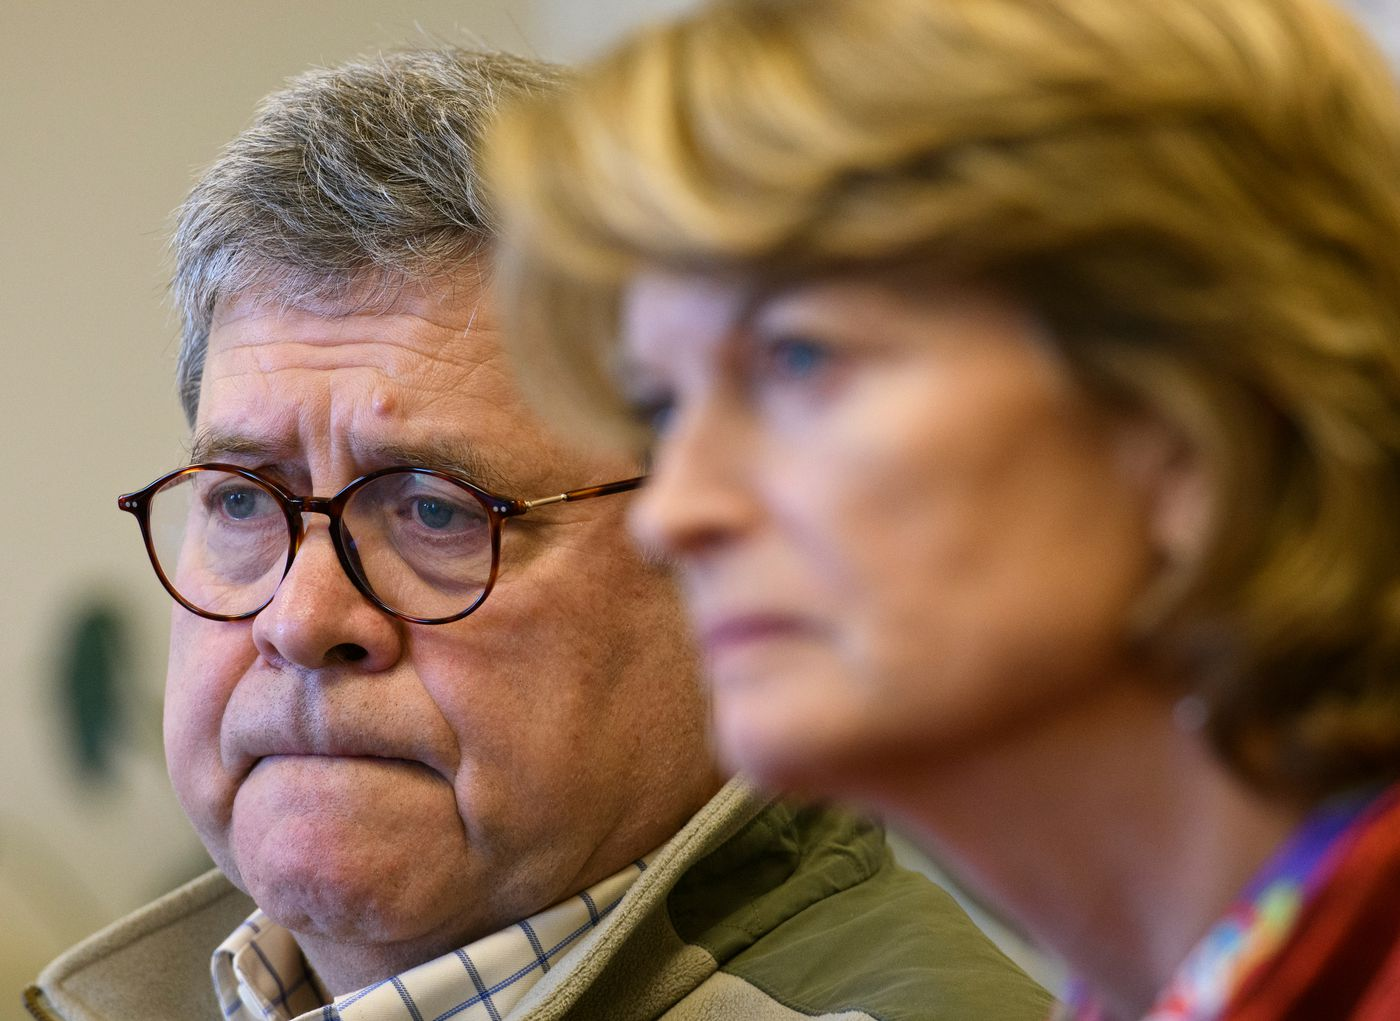 U.S. Attorney General William Barr, left, and Sen. Lisa Murkowski listen to staff of the Tundra Women's Coalition, a shelter for victims of domestic violence and sexual assault, at the facility in Bethel. Barr visited Bethel and Napaskiak Friday, May 31, 2019 to learn about law enforcement and public safety challenges in the region. (Marc Lester / ADN)